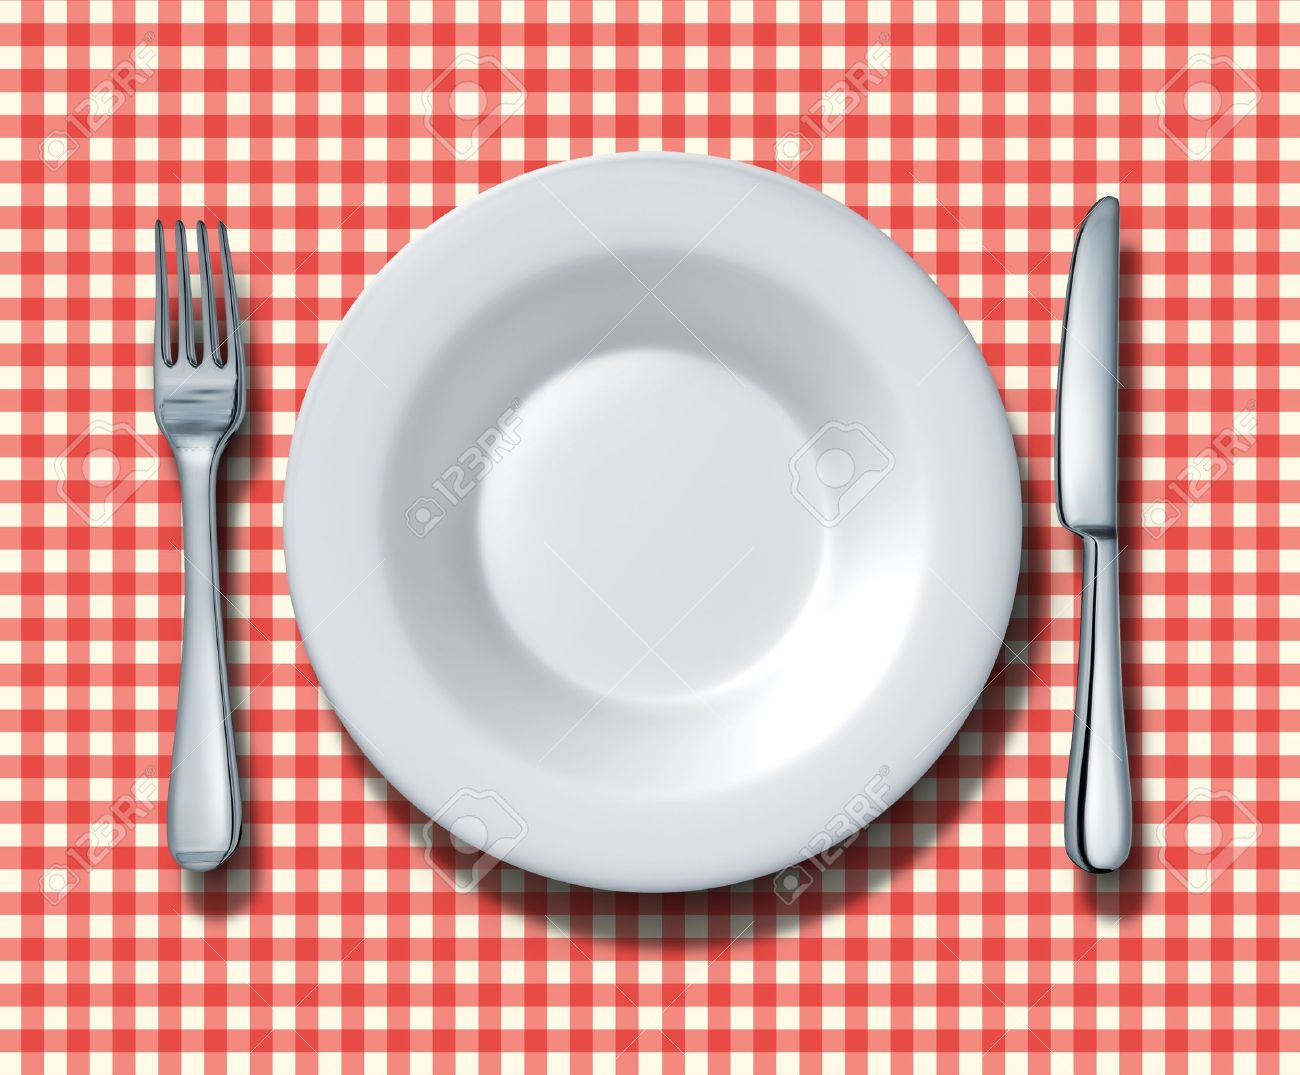 Place Setting For A Family Restaurant With A Red And White Checkered ...